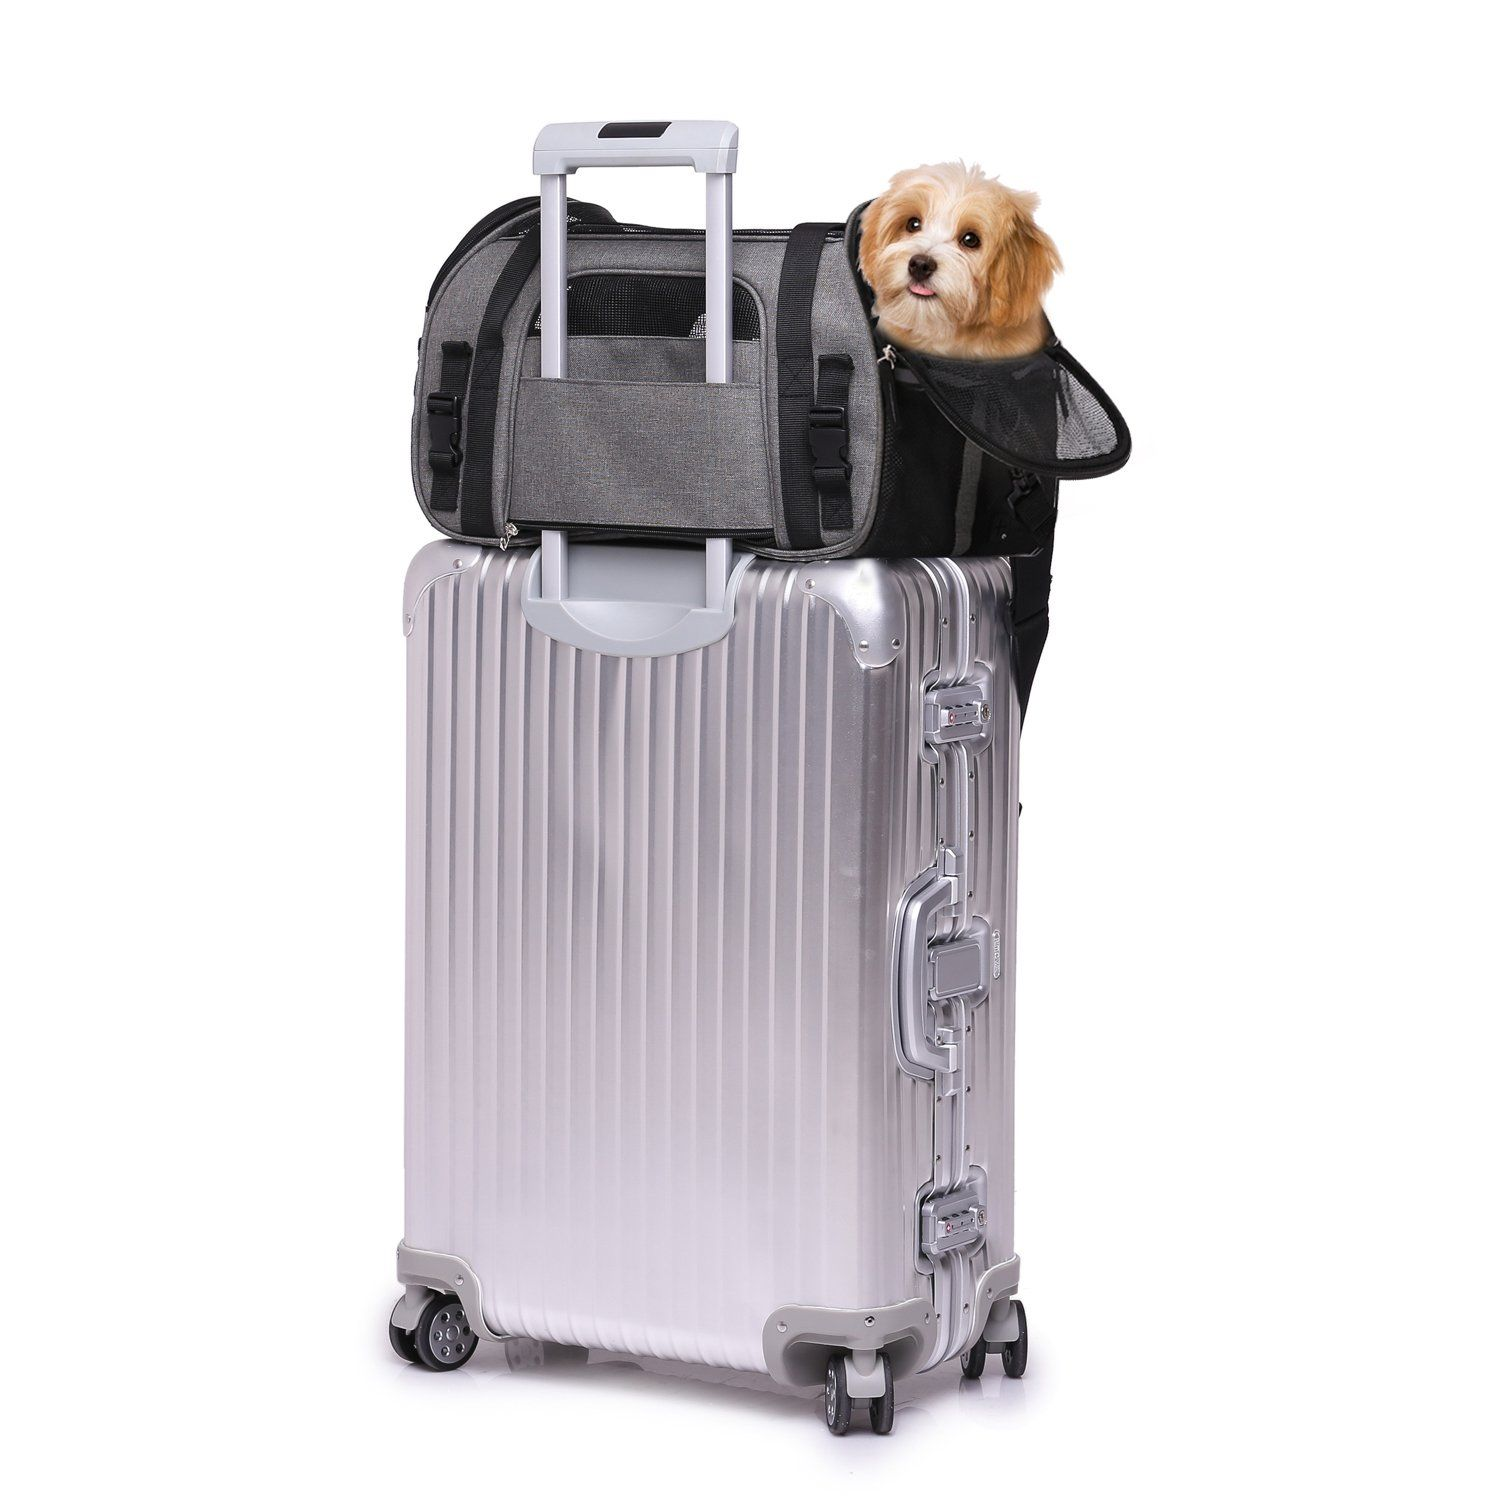 e198702982 Jespet Soft Sided Pet Carrier Comfort 17†for Airline Travel Portable Dog  Tote Bag for